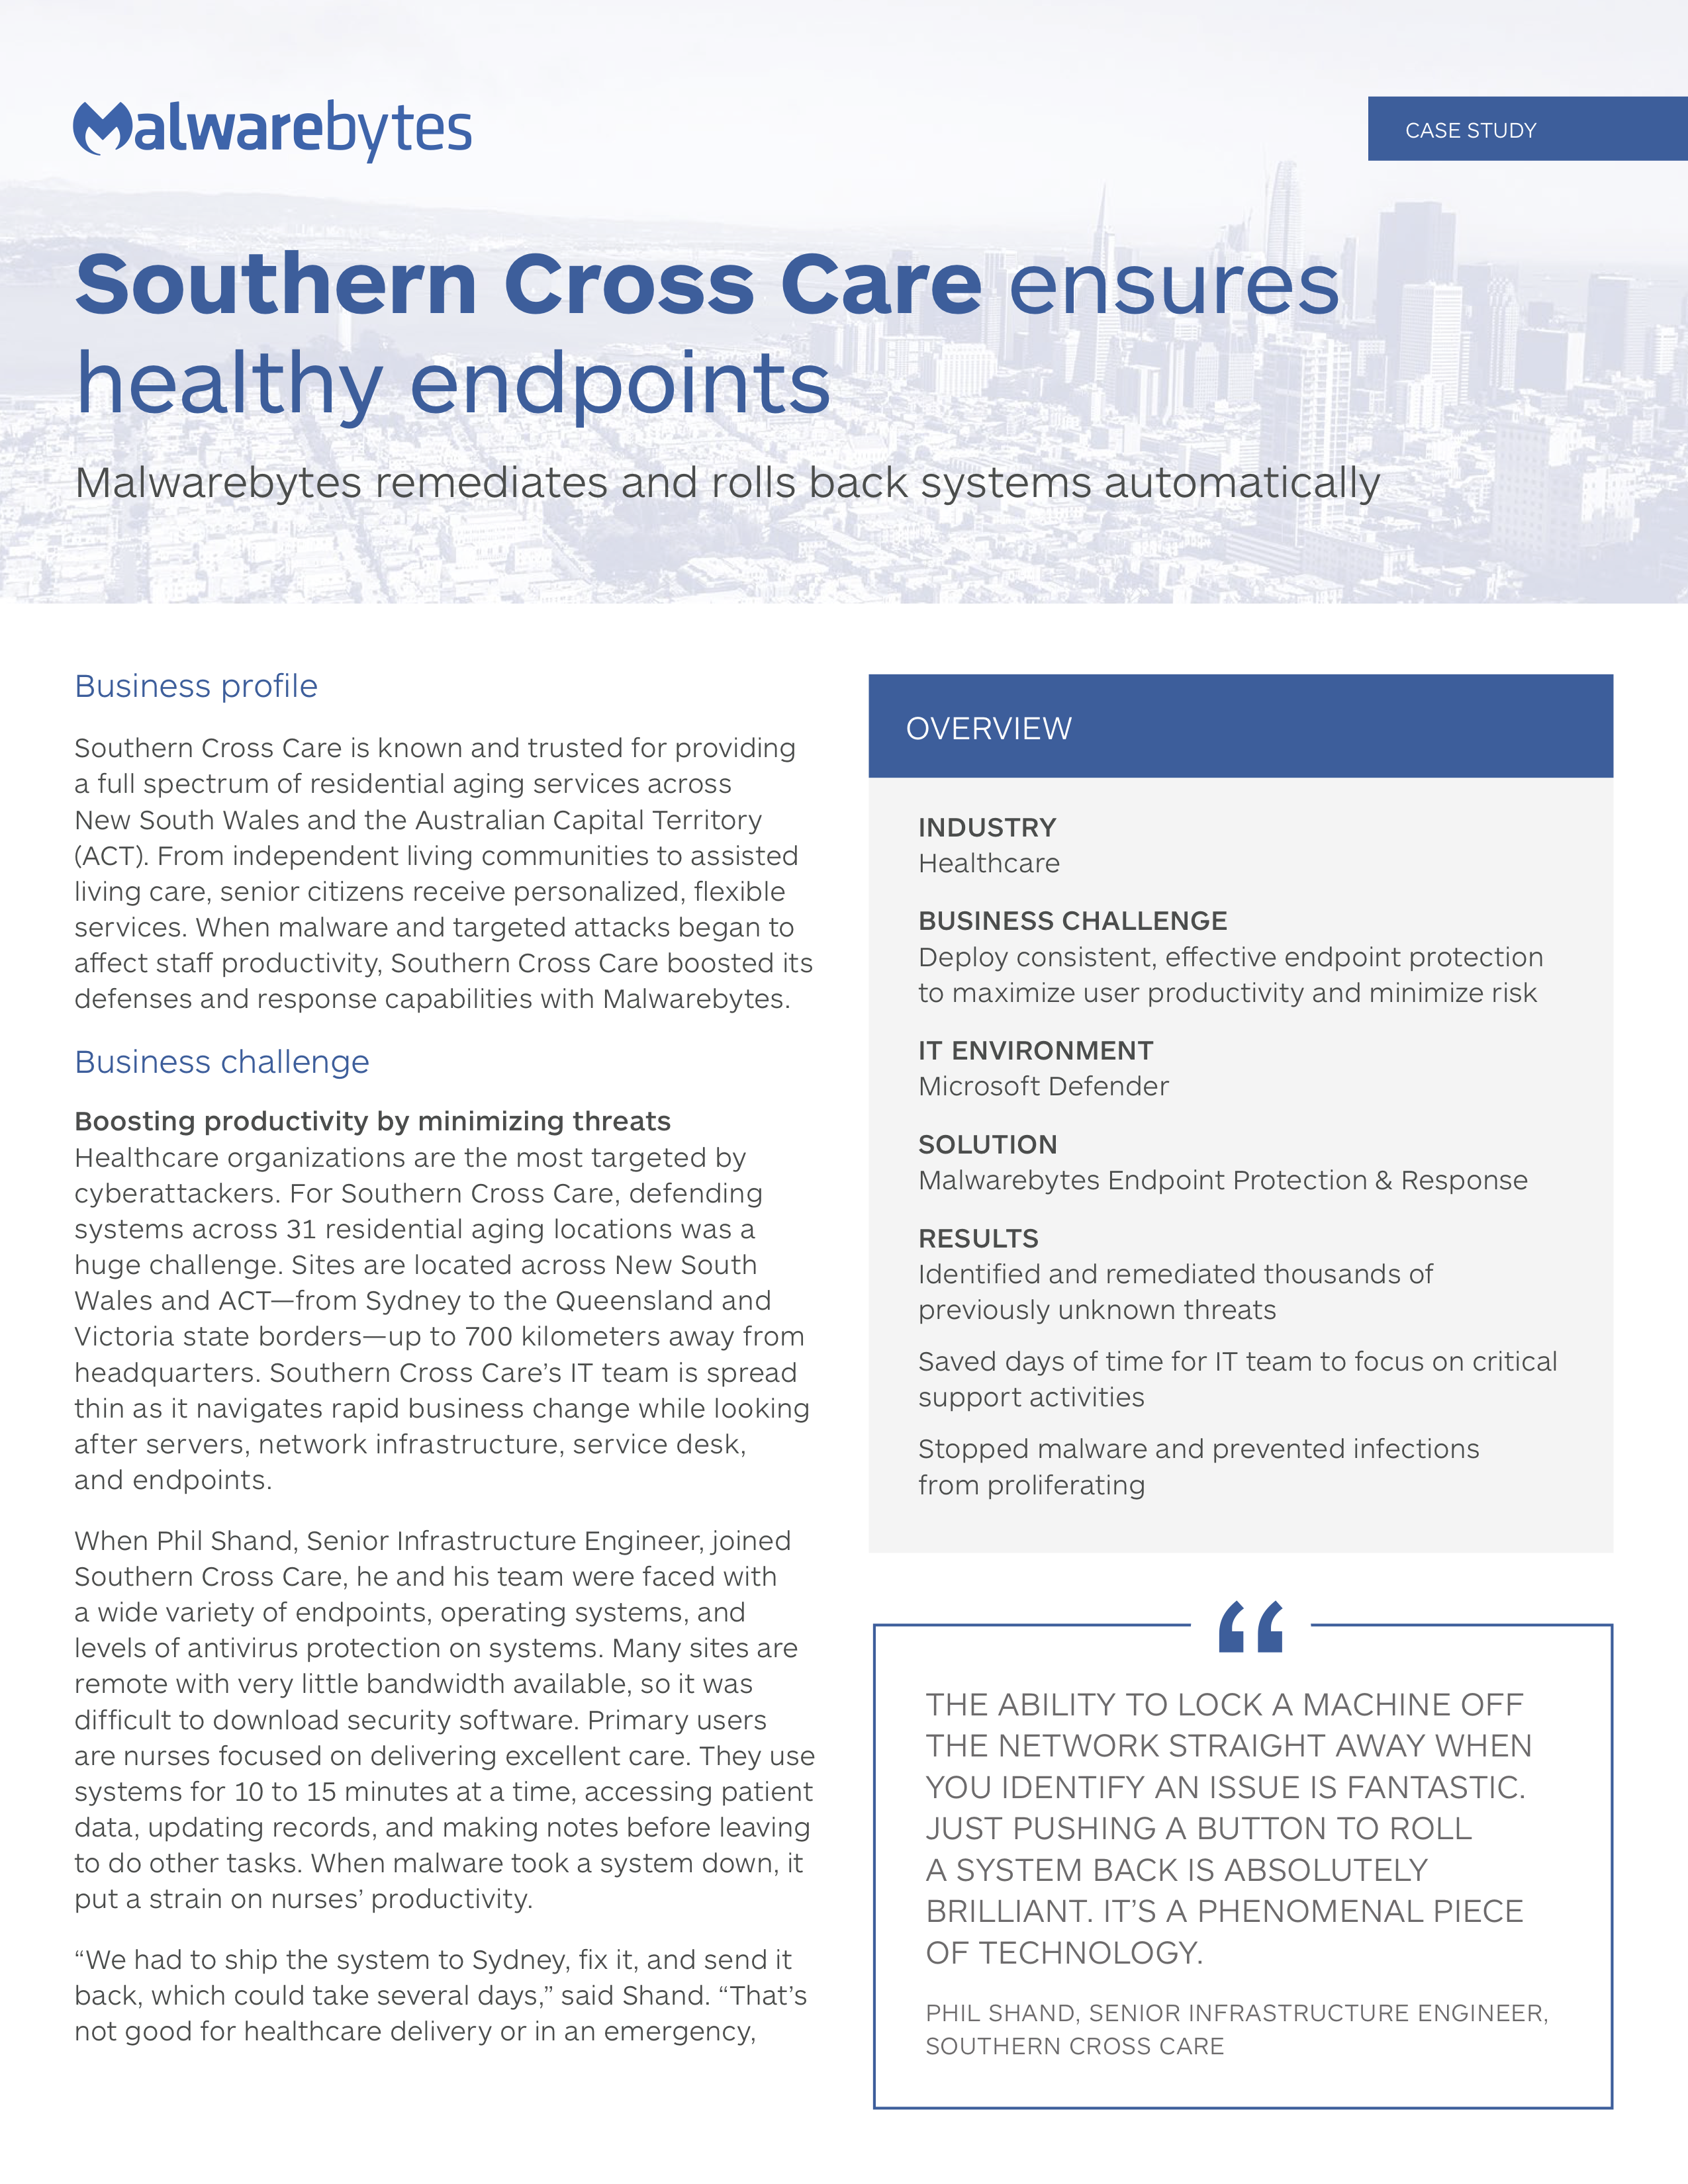 Southern Cross Care ensures healthy endpoints